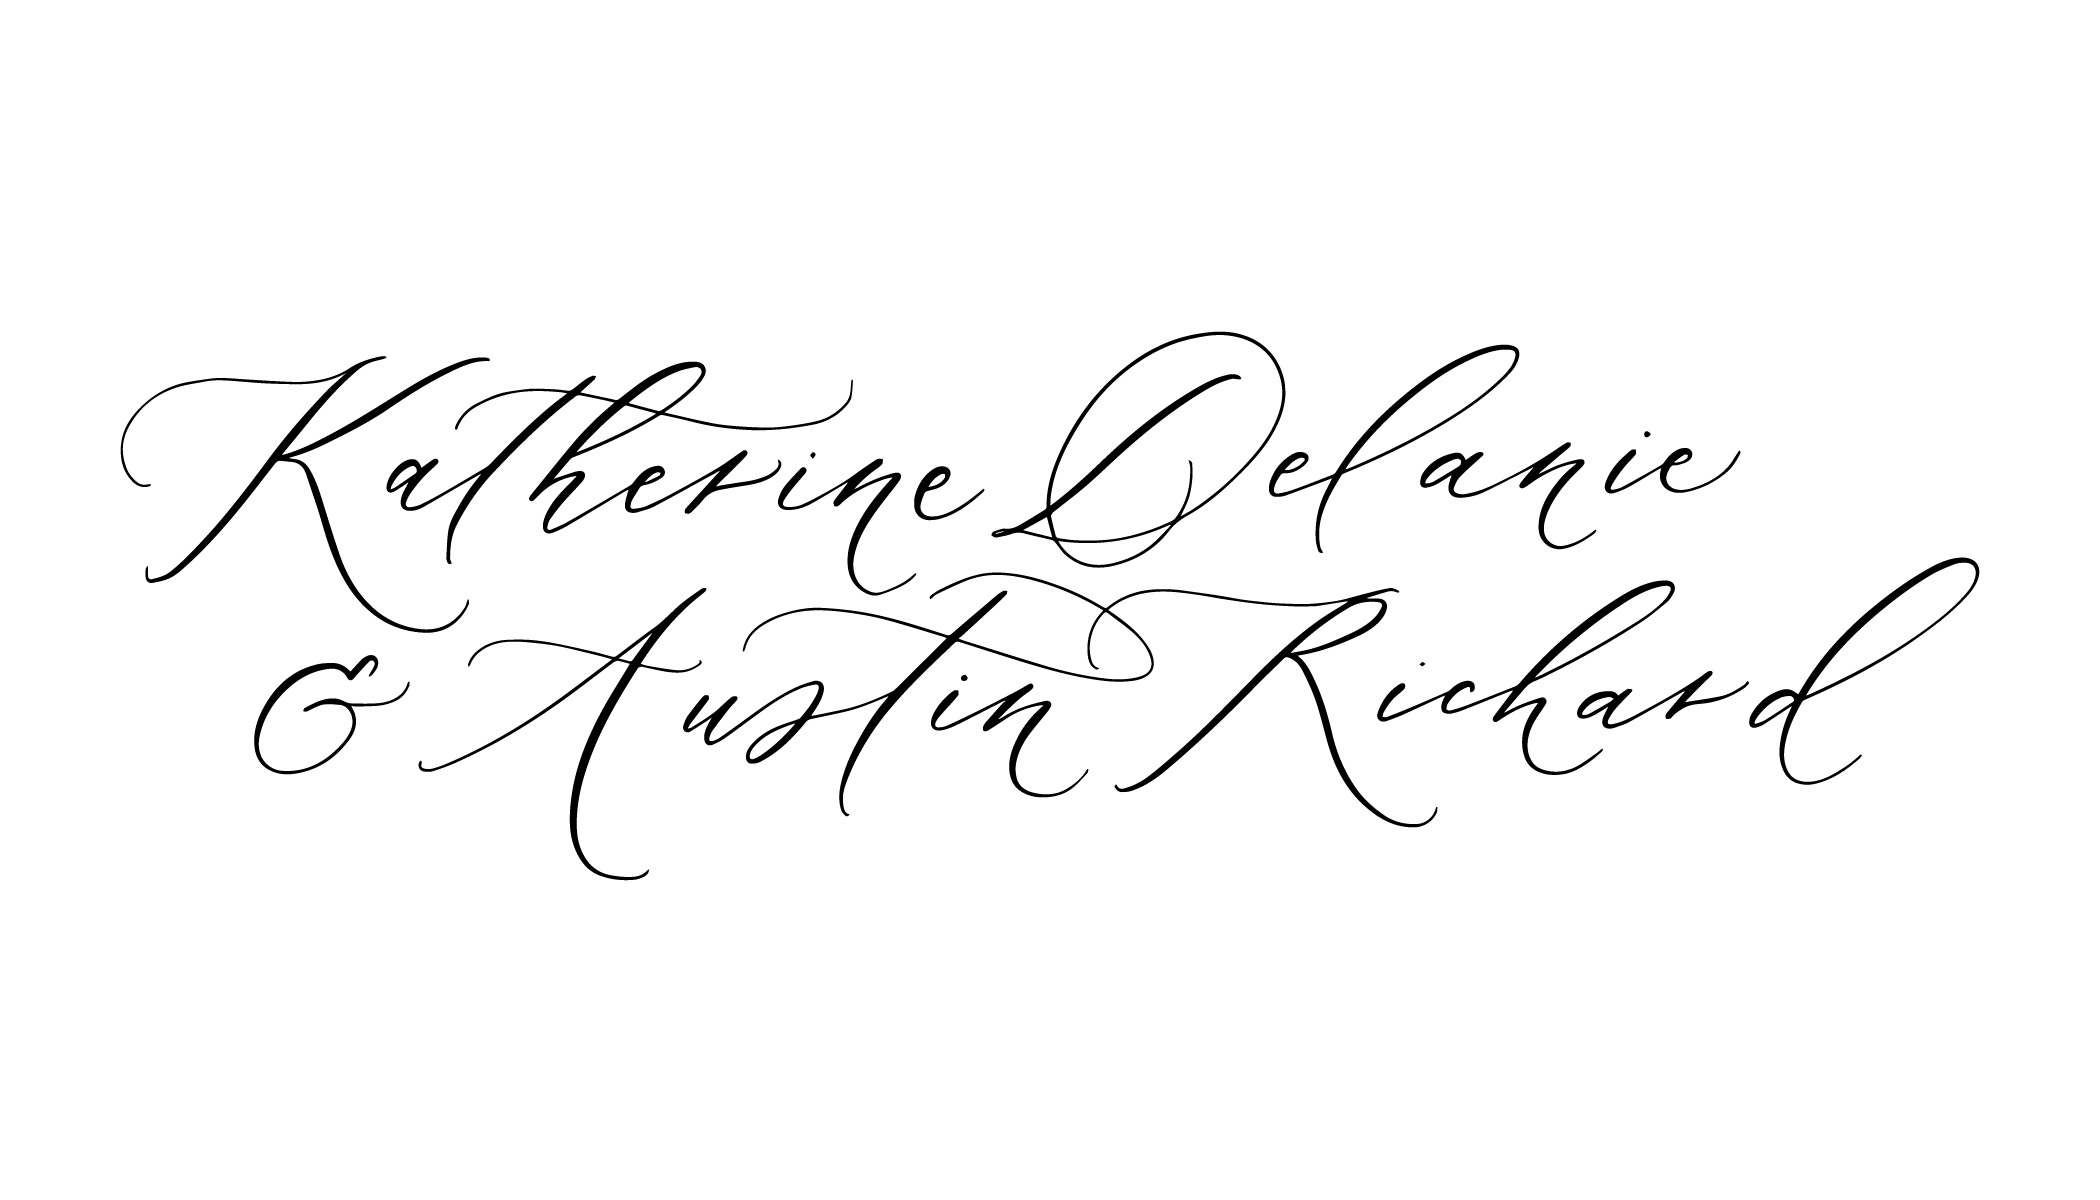 Antiqua Calligraphy Style by Caitlin O'Bryant Design